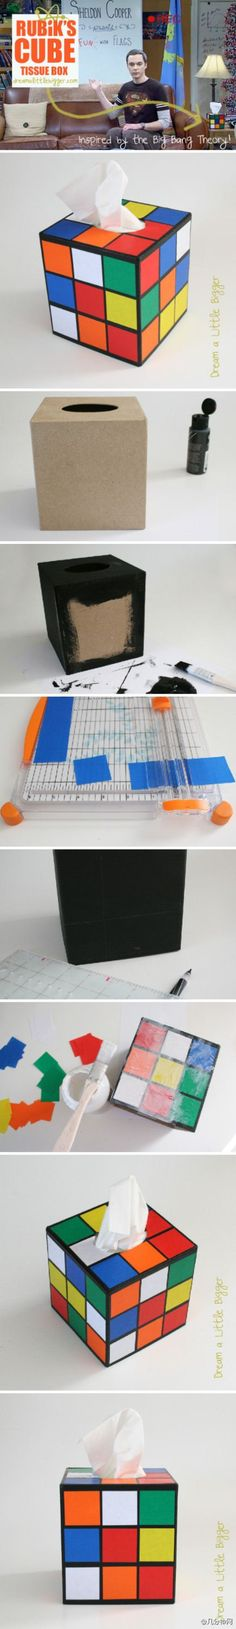 Do-able ... Rubiks Cube tissue box....ocd part of me thinks it should be a completed cube.